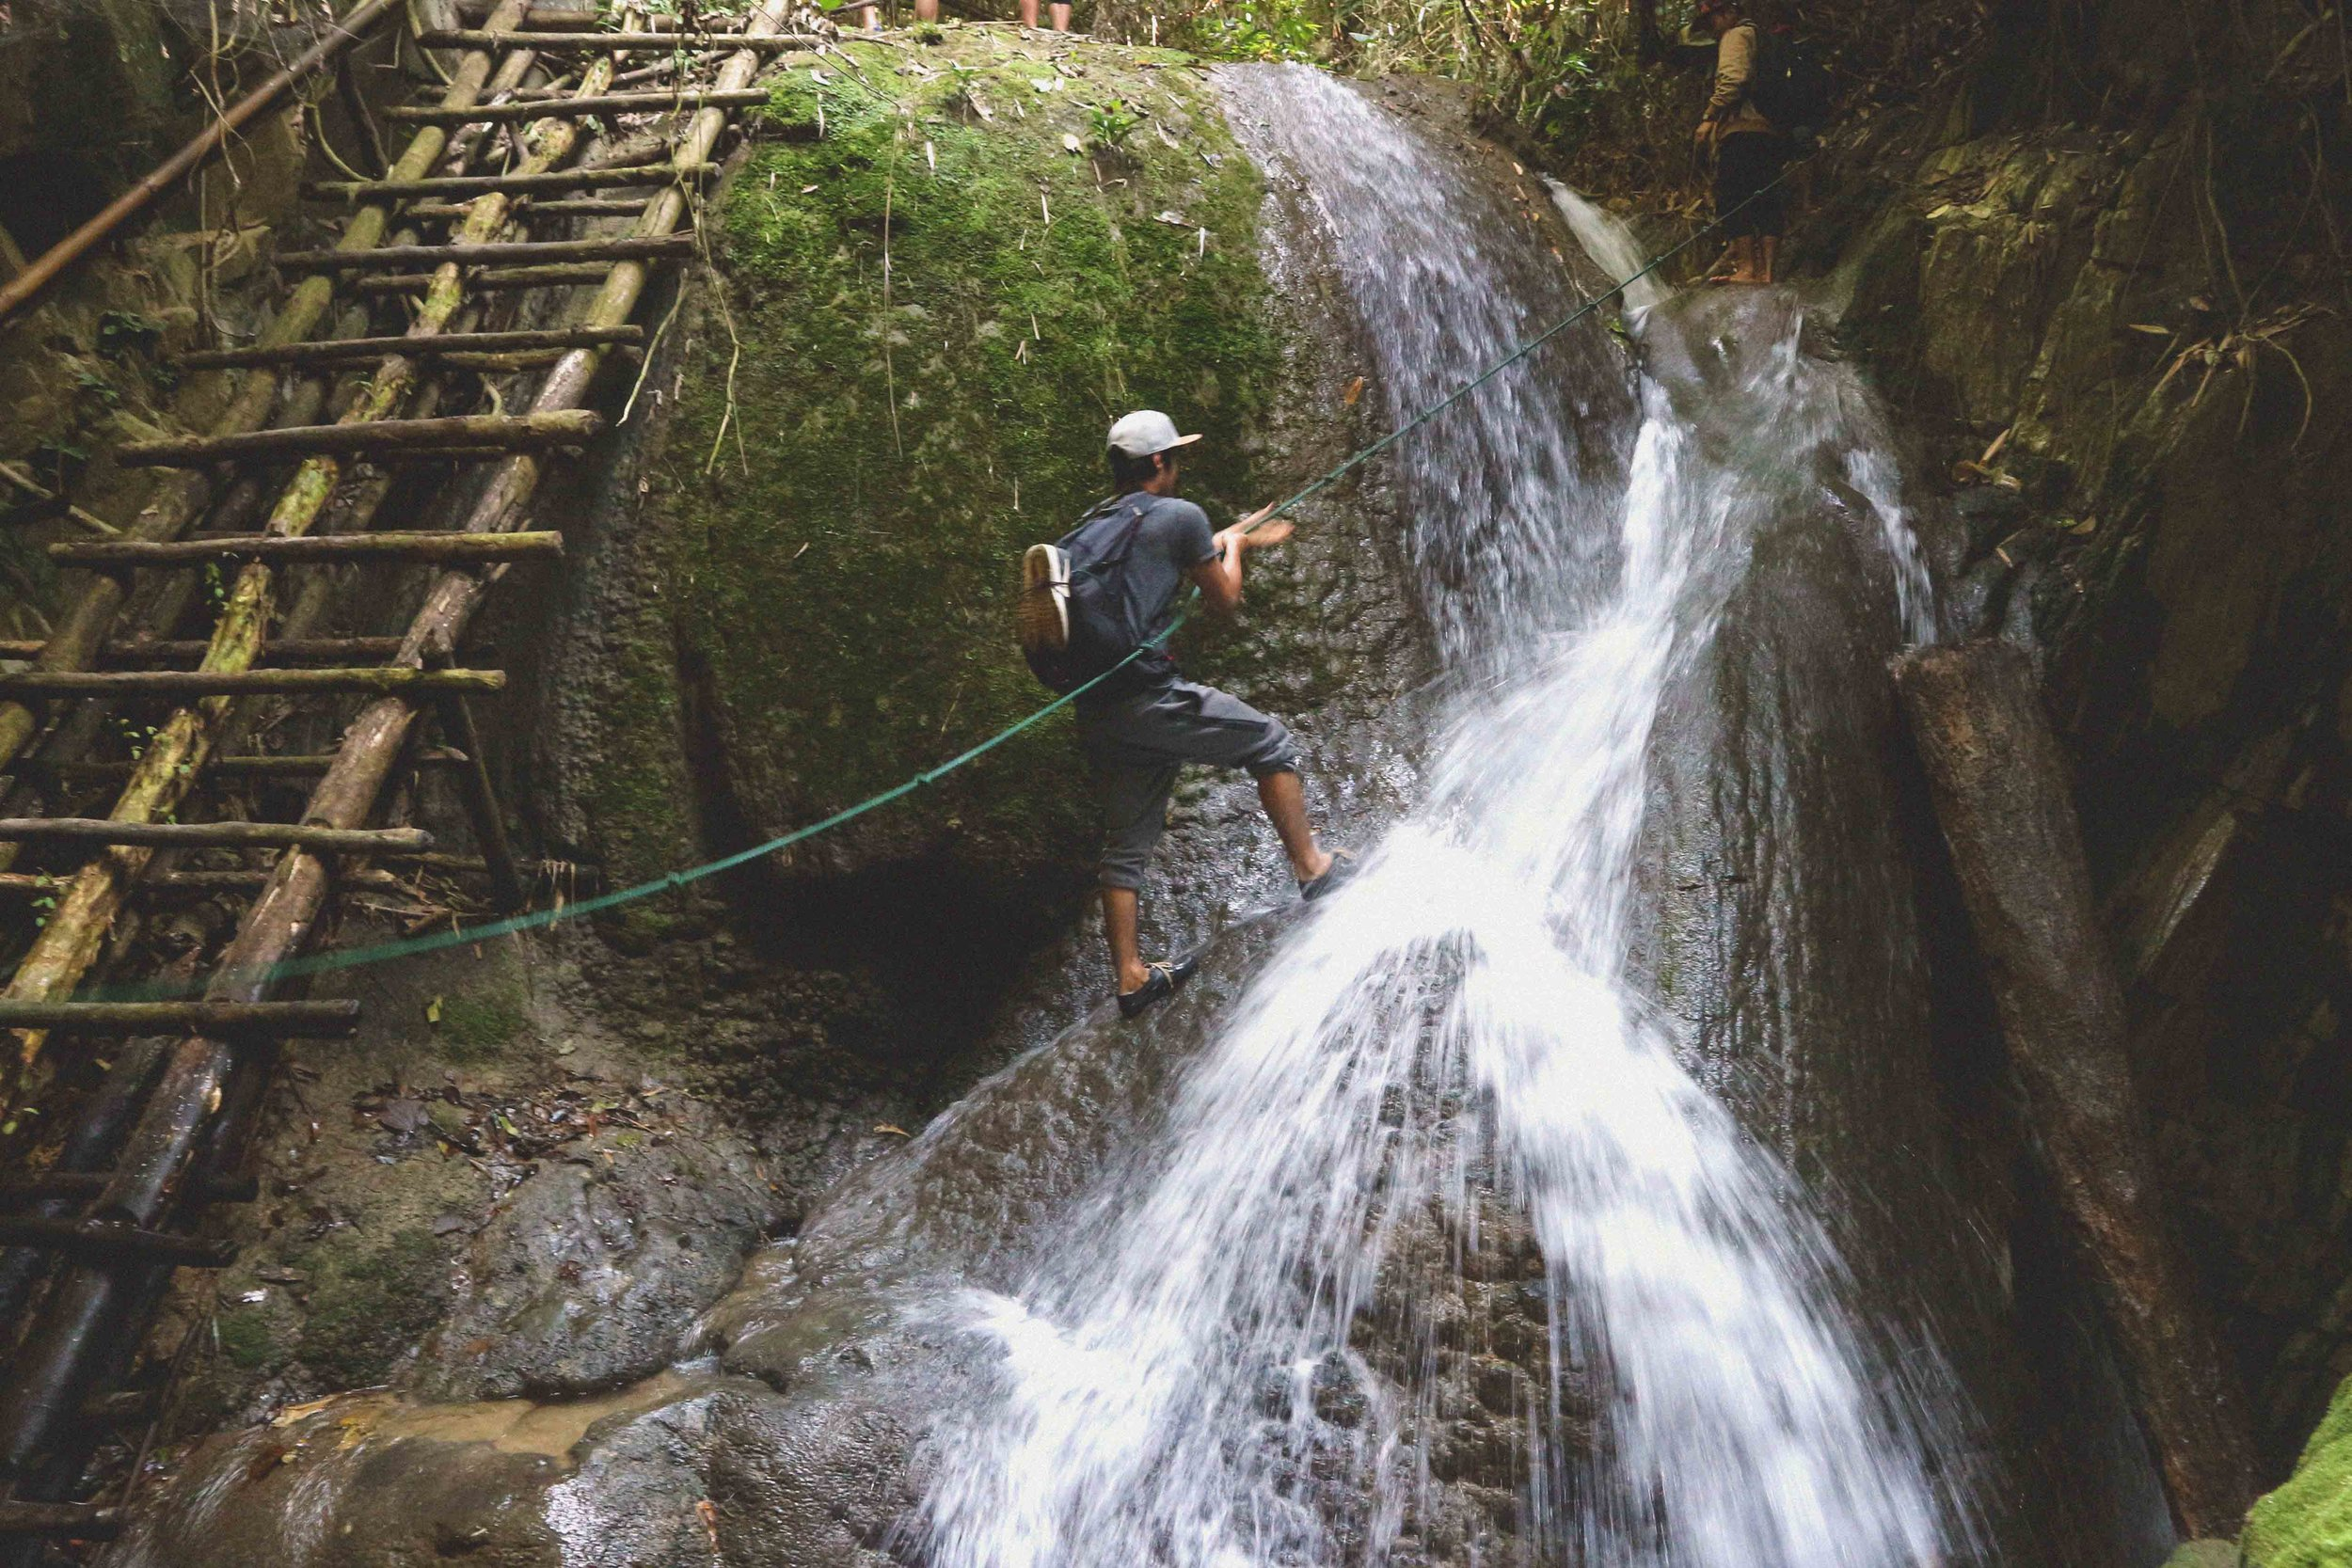 Climbing one of the 100 waterfalls